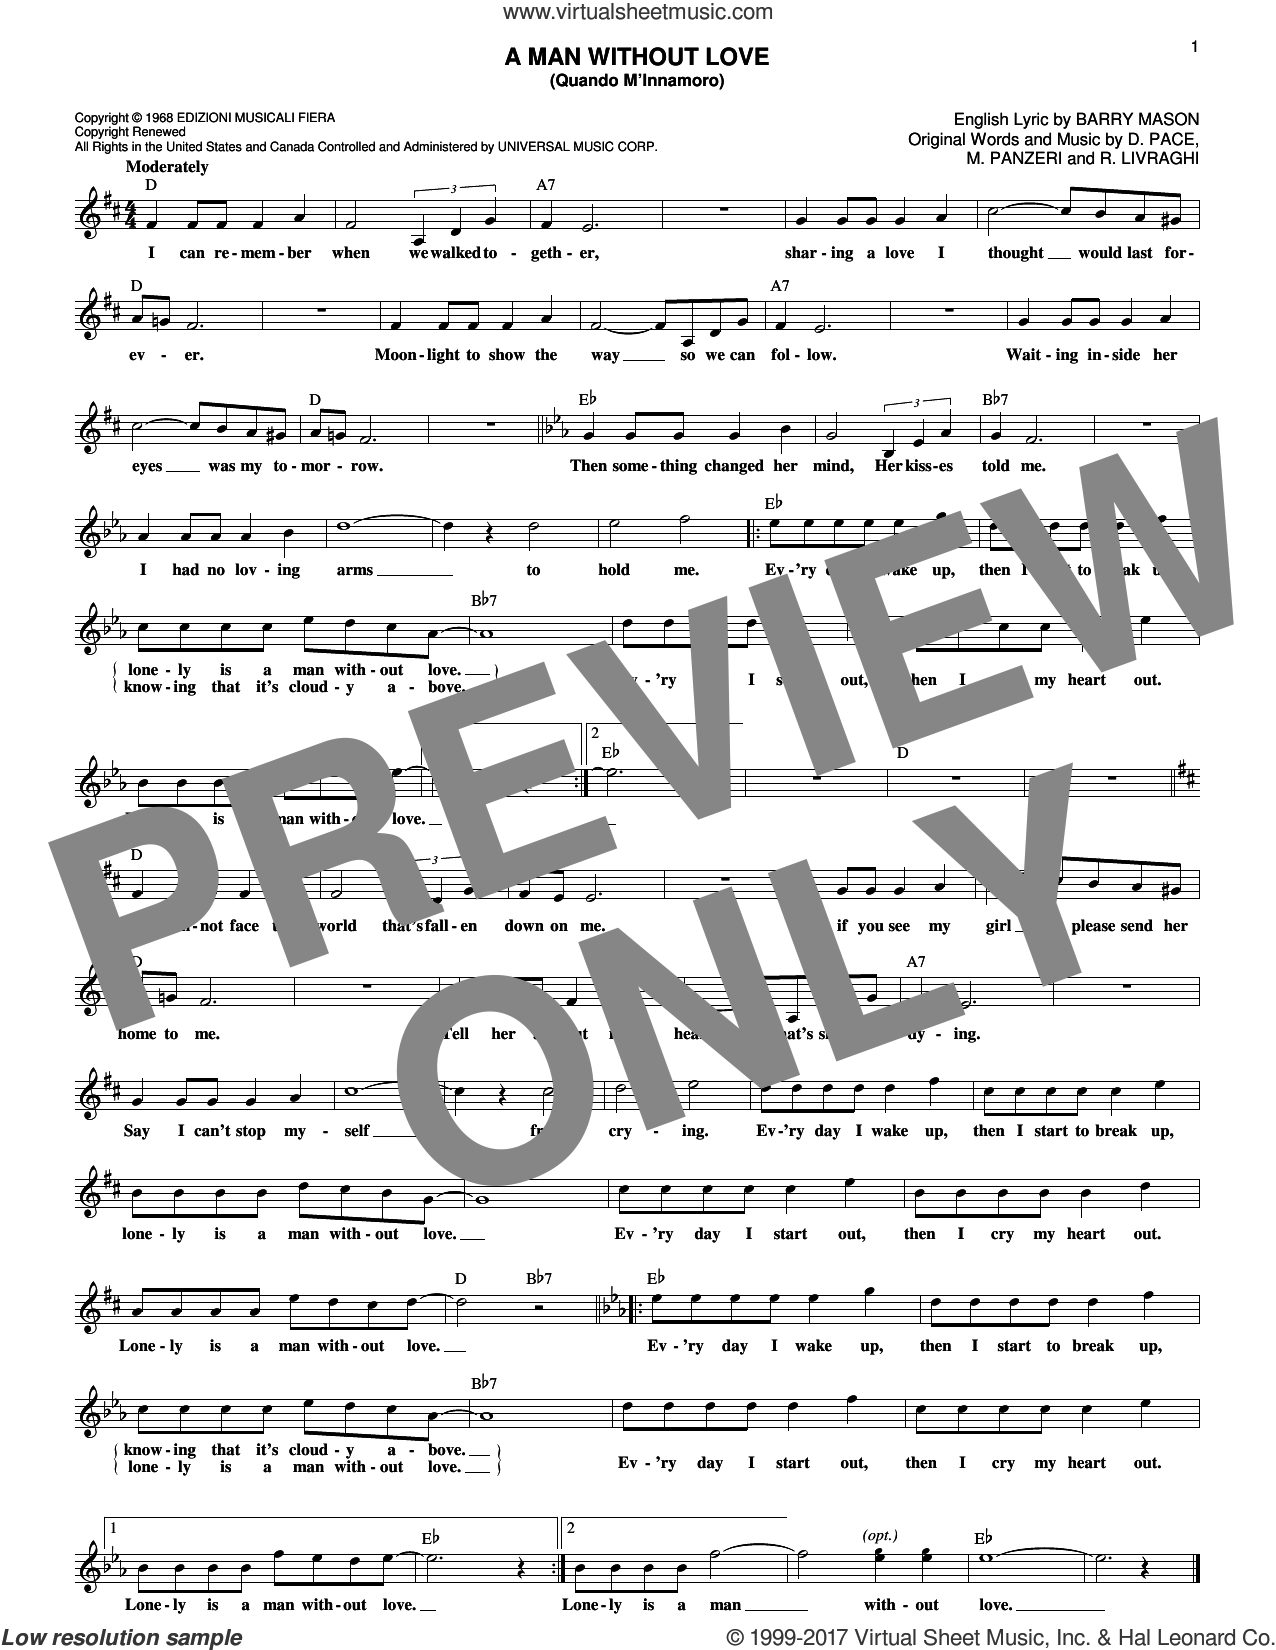 A Man Without Love (Quando M'Innamoro) sheet music for voice and other instruments (fake book) by Engelbert Humperdinck, Barry Mason, D. Pace, M. Panzeri and R. Livraghi, intermediate